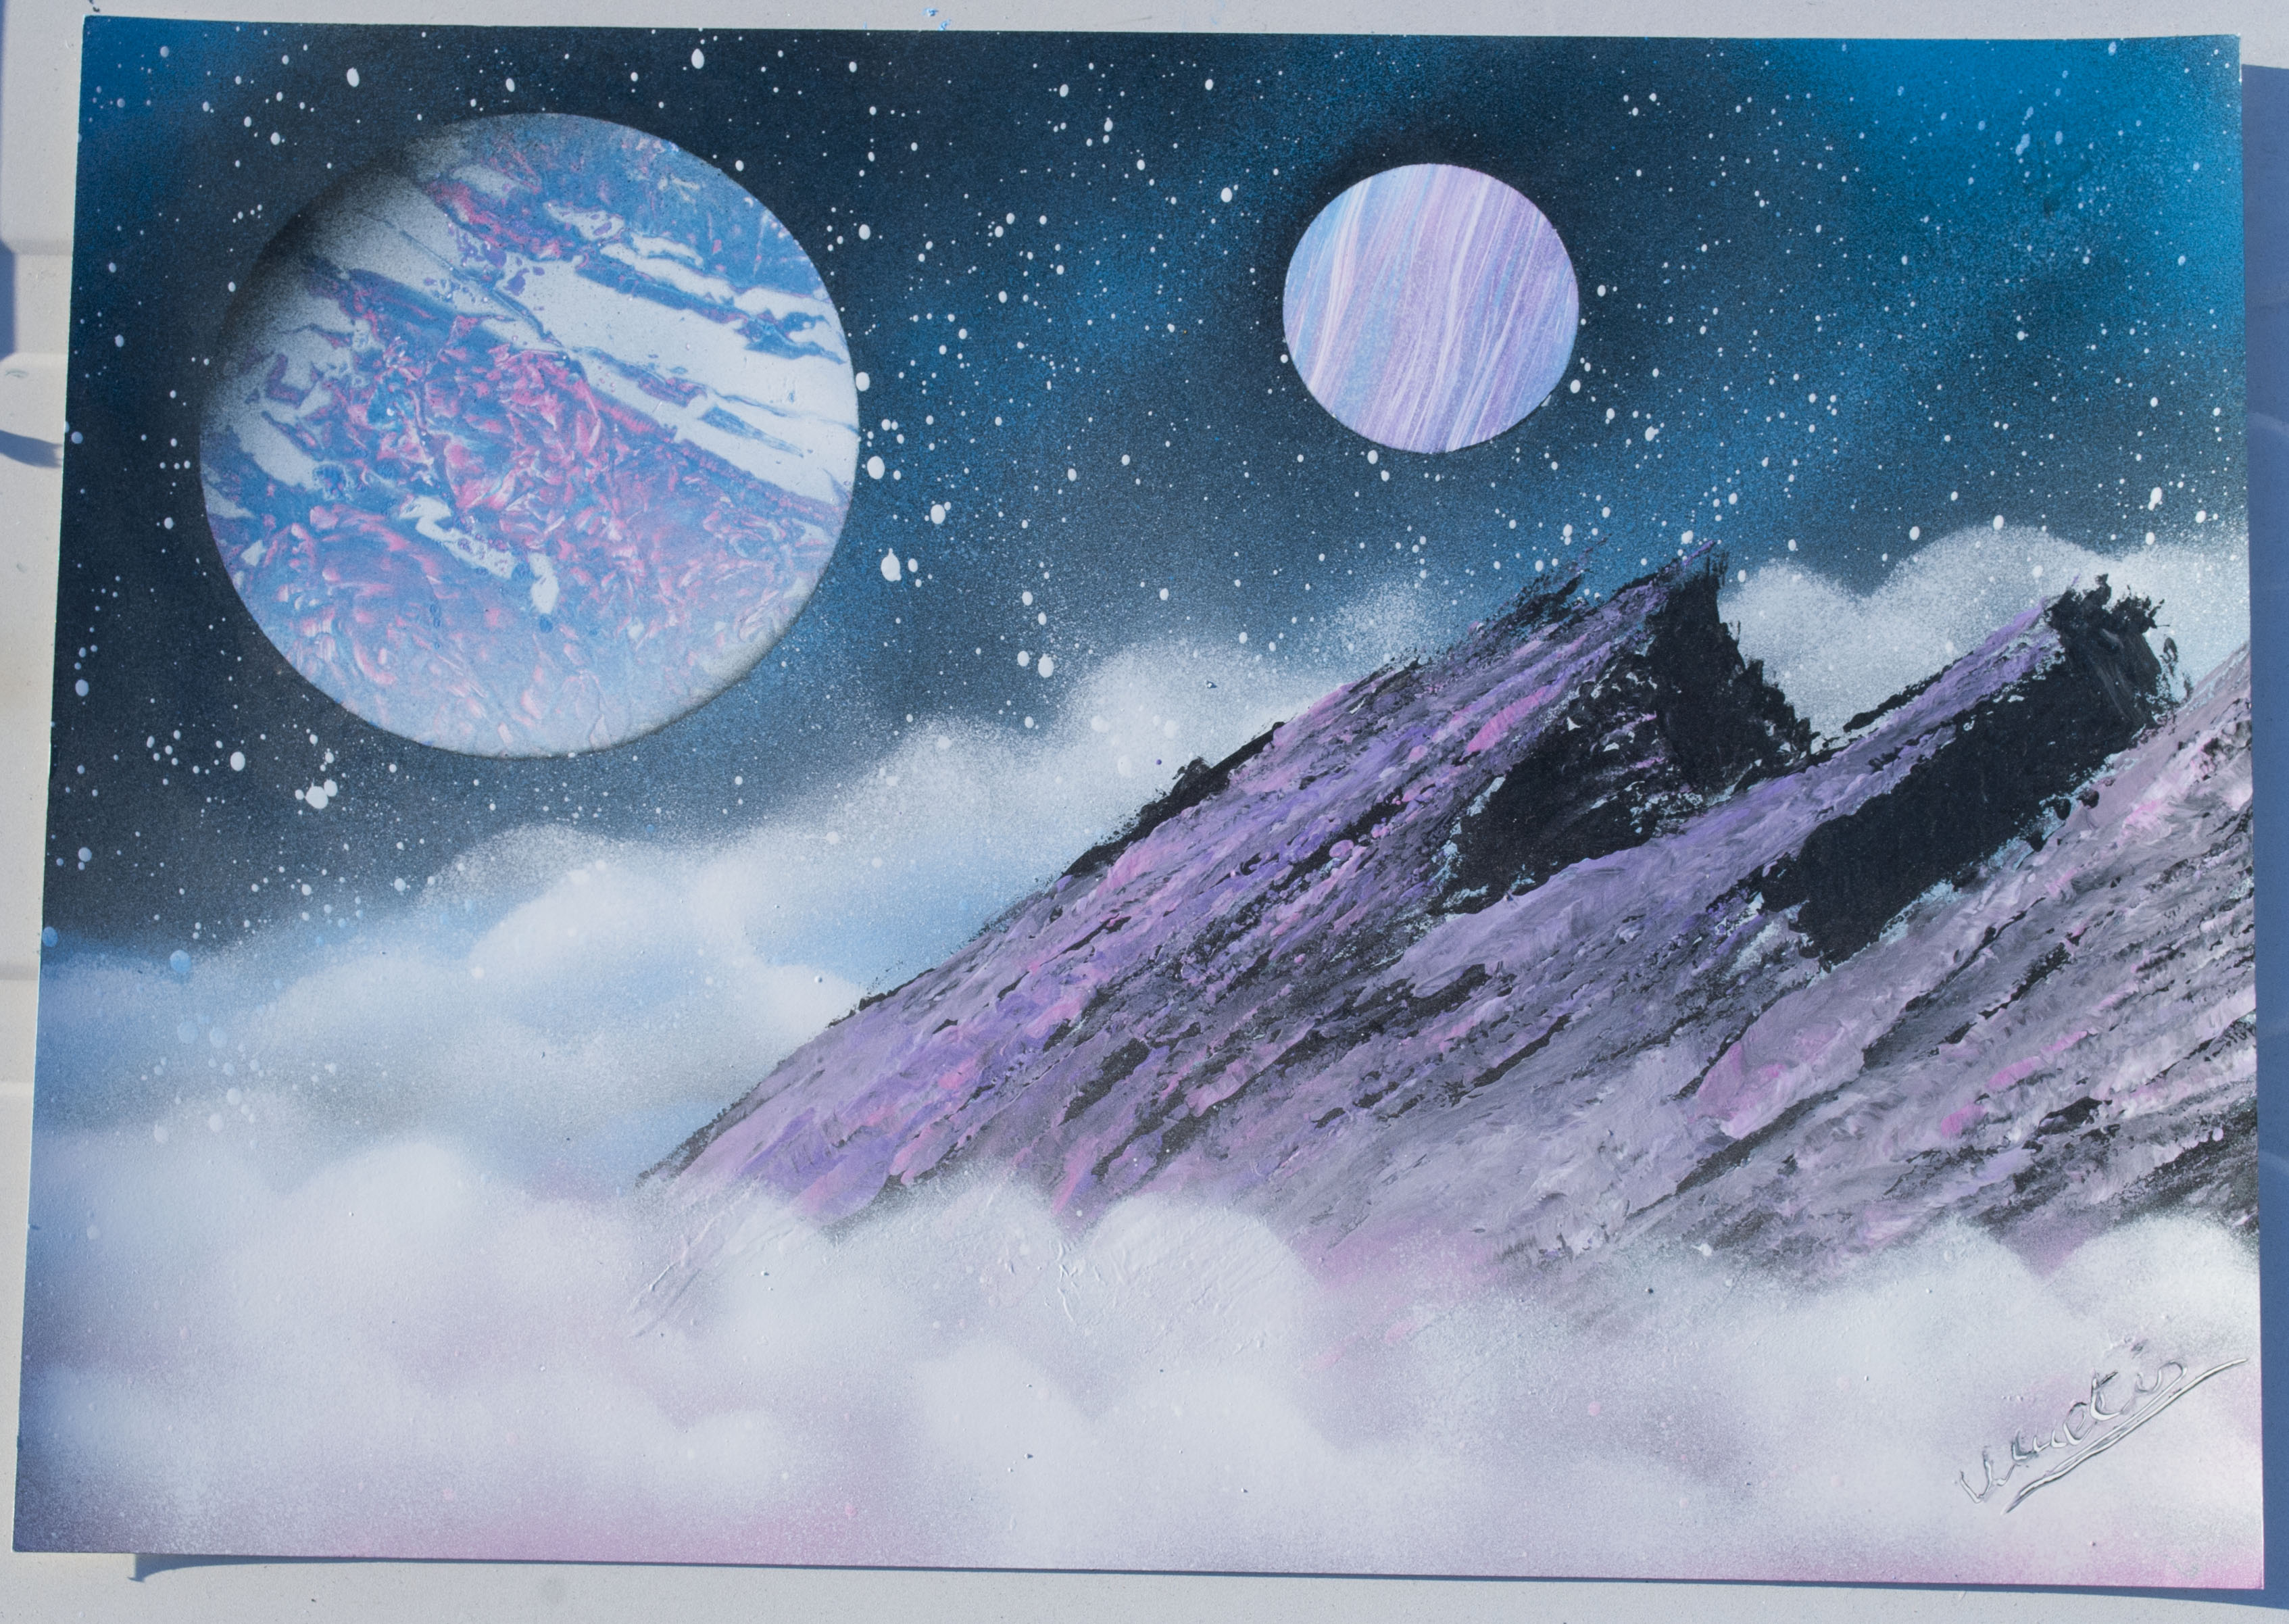 Cloud mountain spray paint art by ucuetis